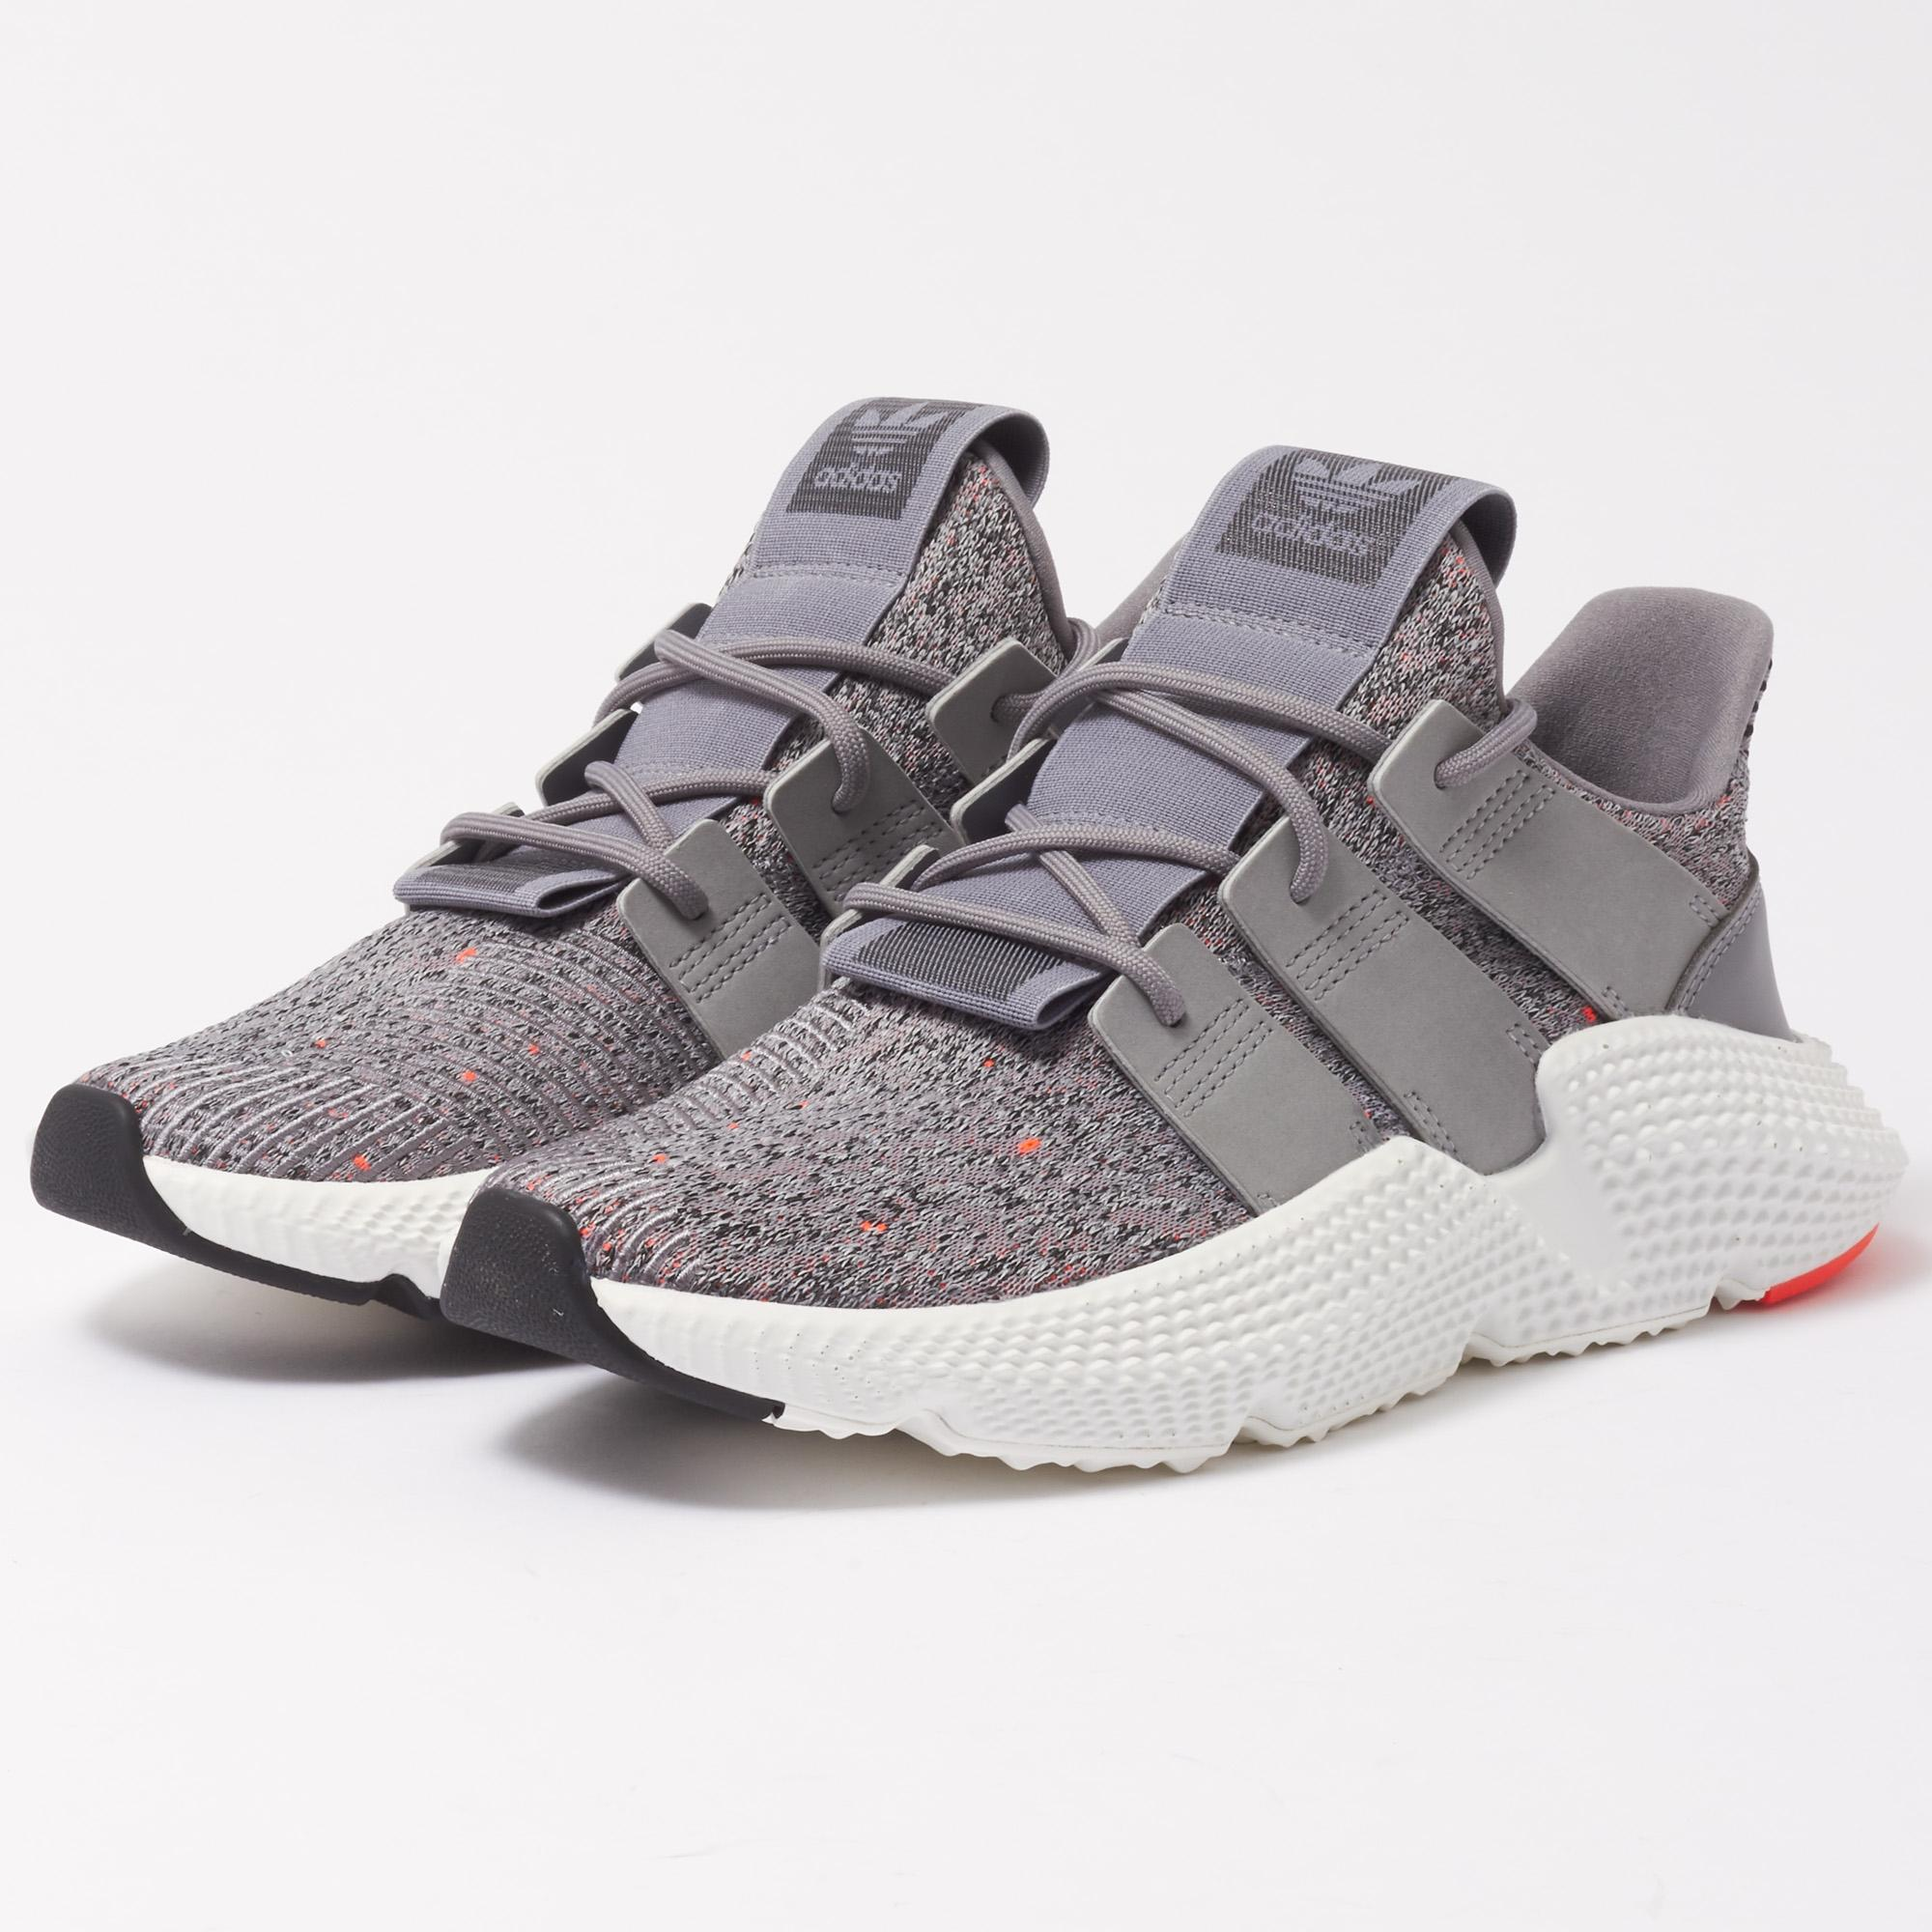 Infrared Adidas Greyamp; Gray Prophere 0ovpymnwn8 Originals Men For 08knwPO